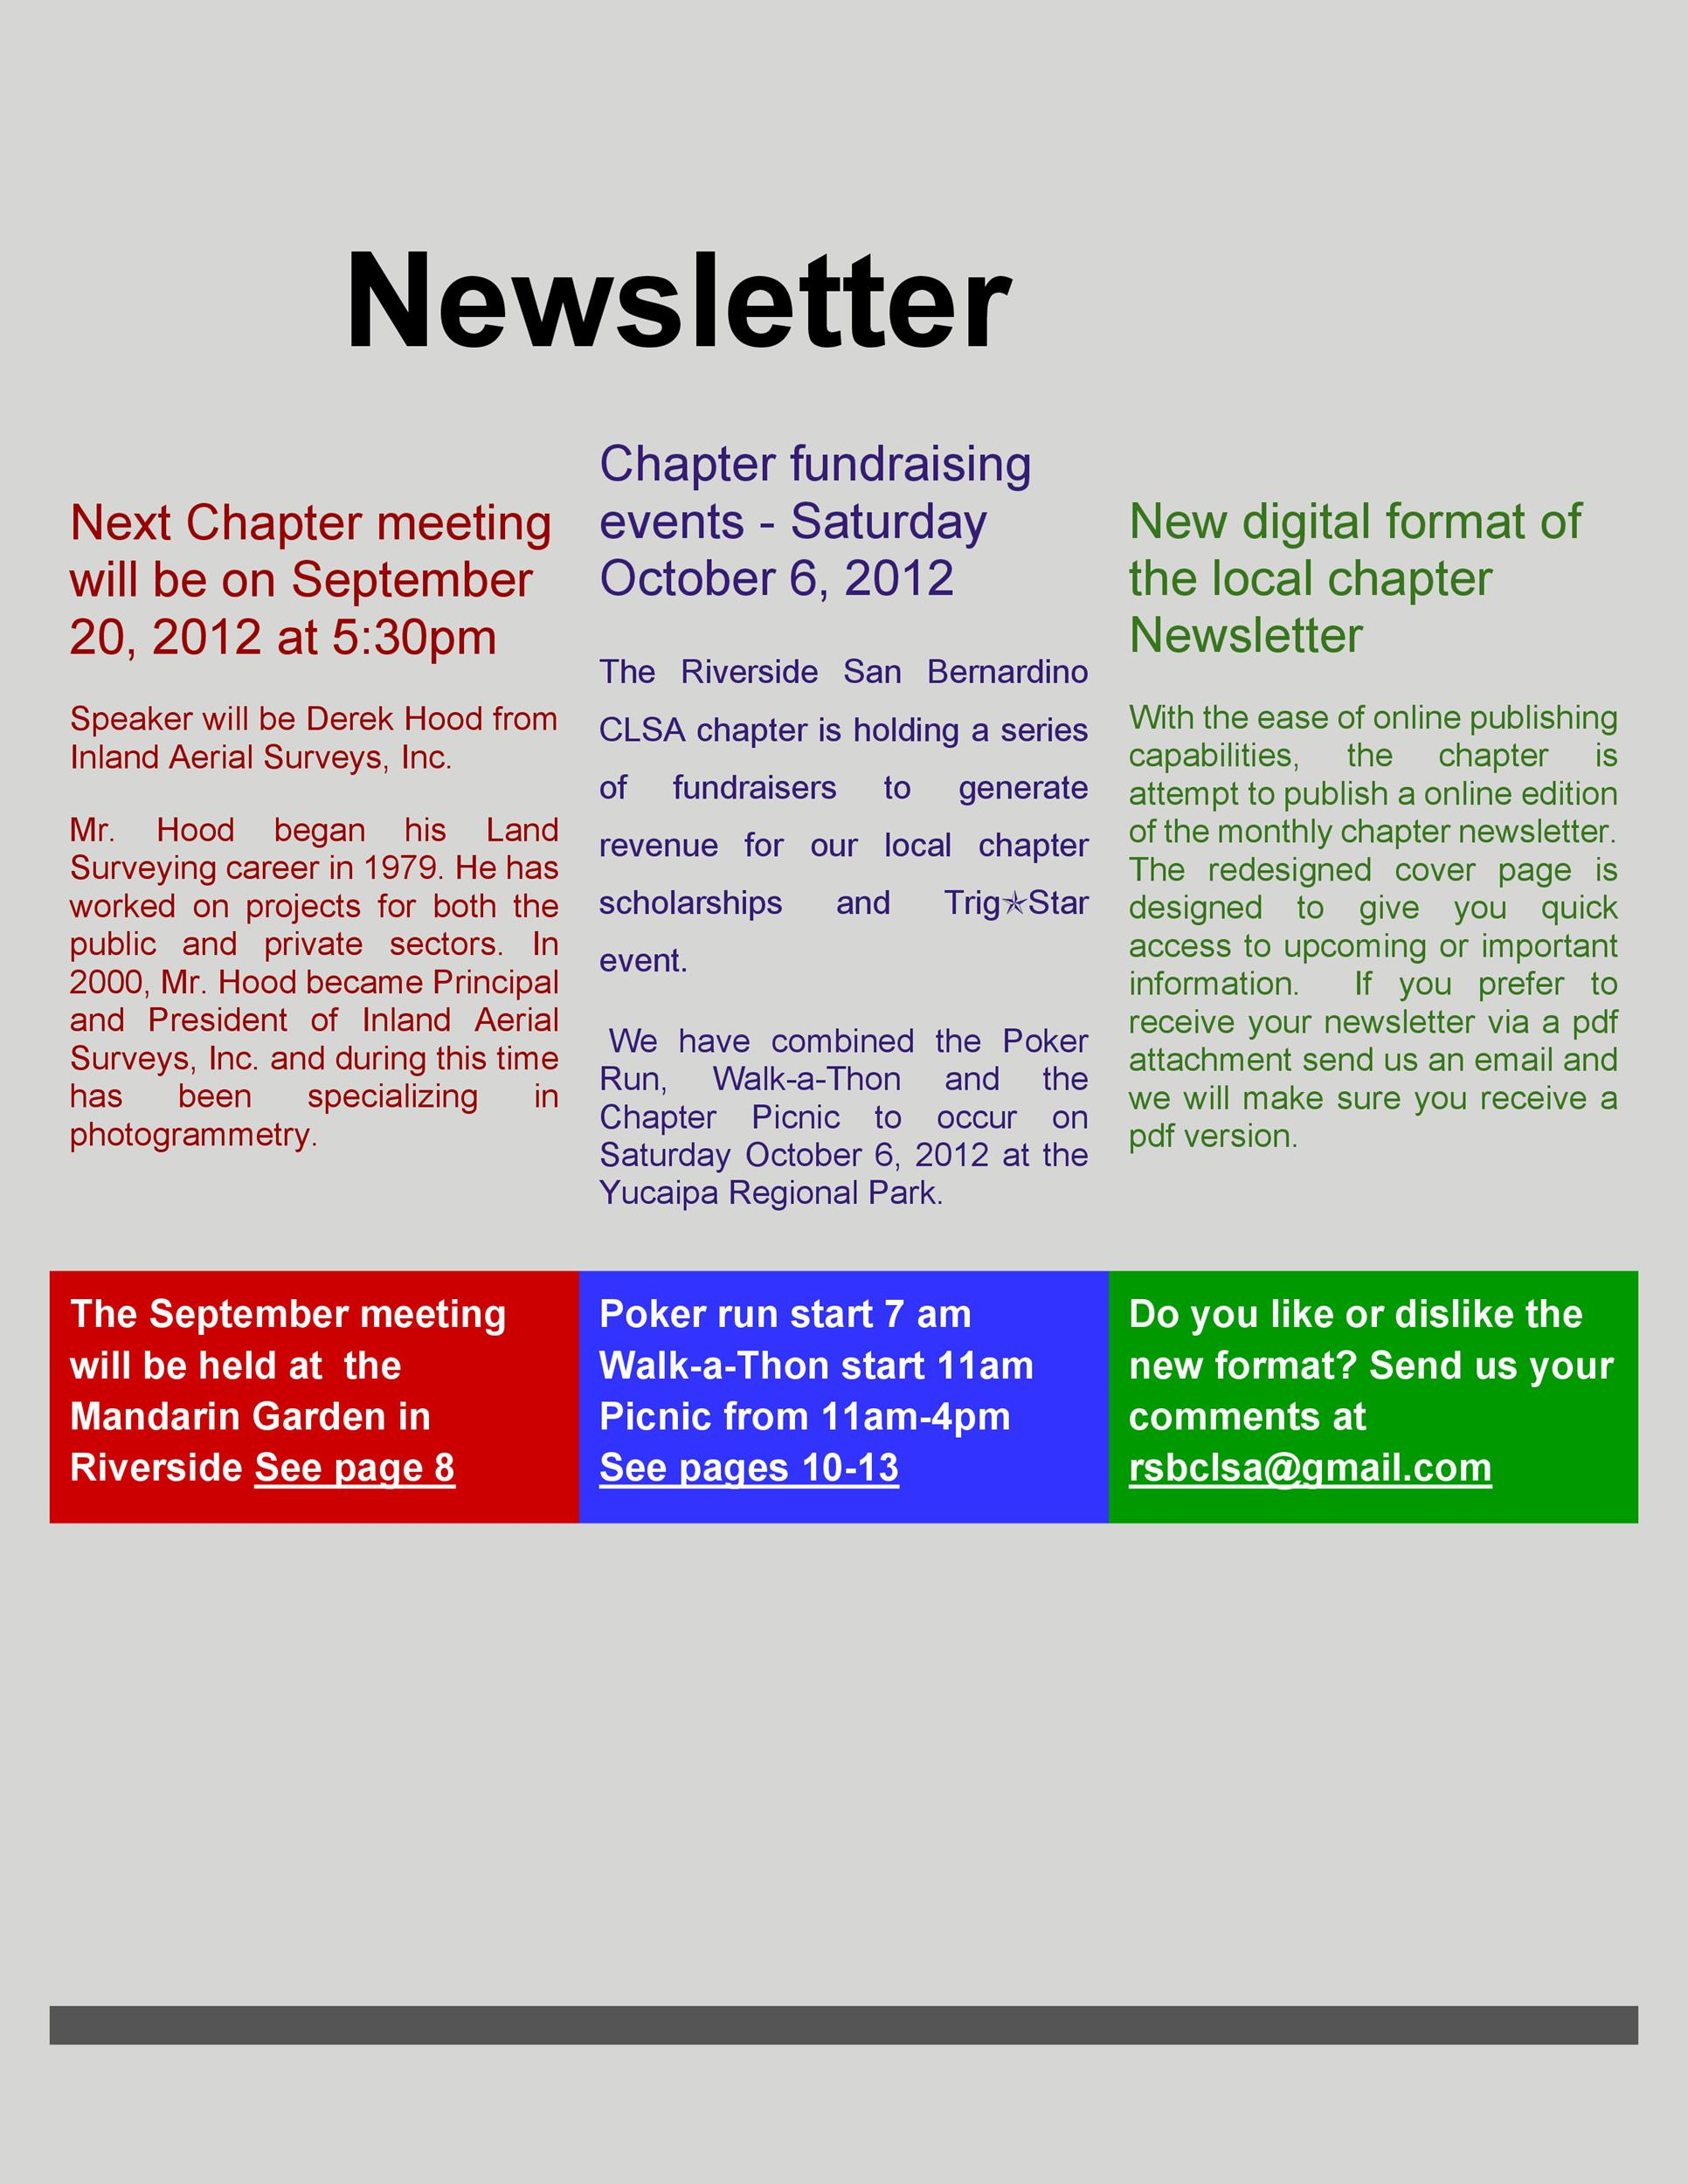 FREE Newsletter Templates For Work School And Classroom - Newsletter format template